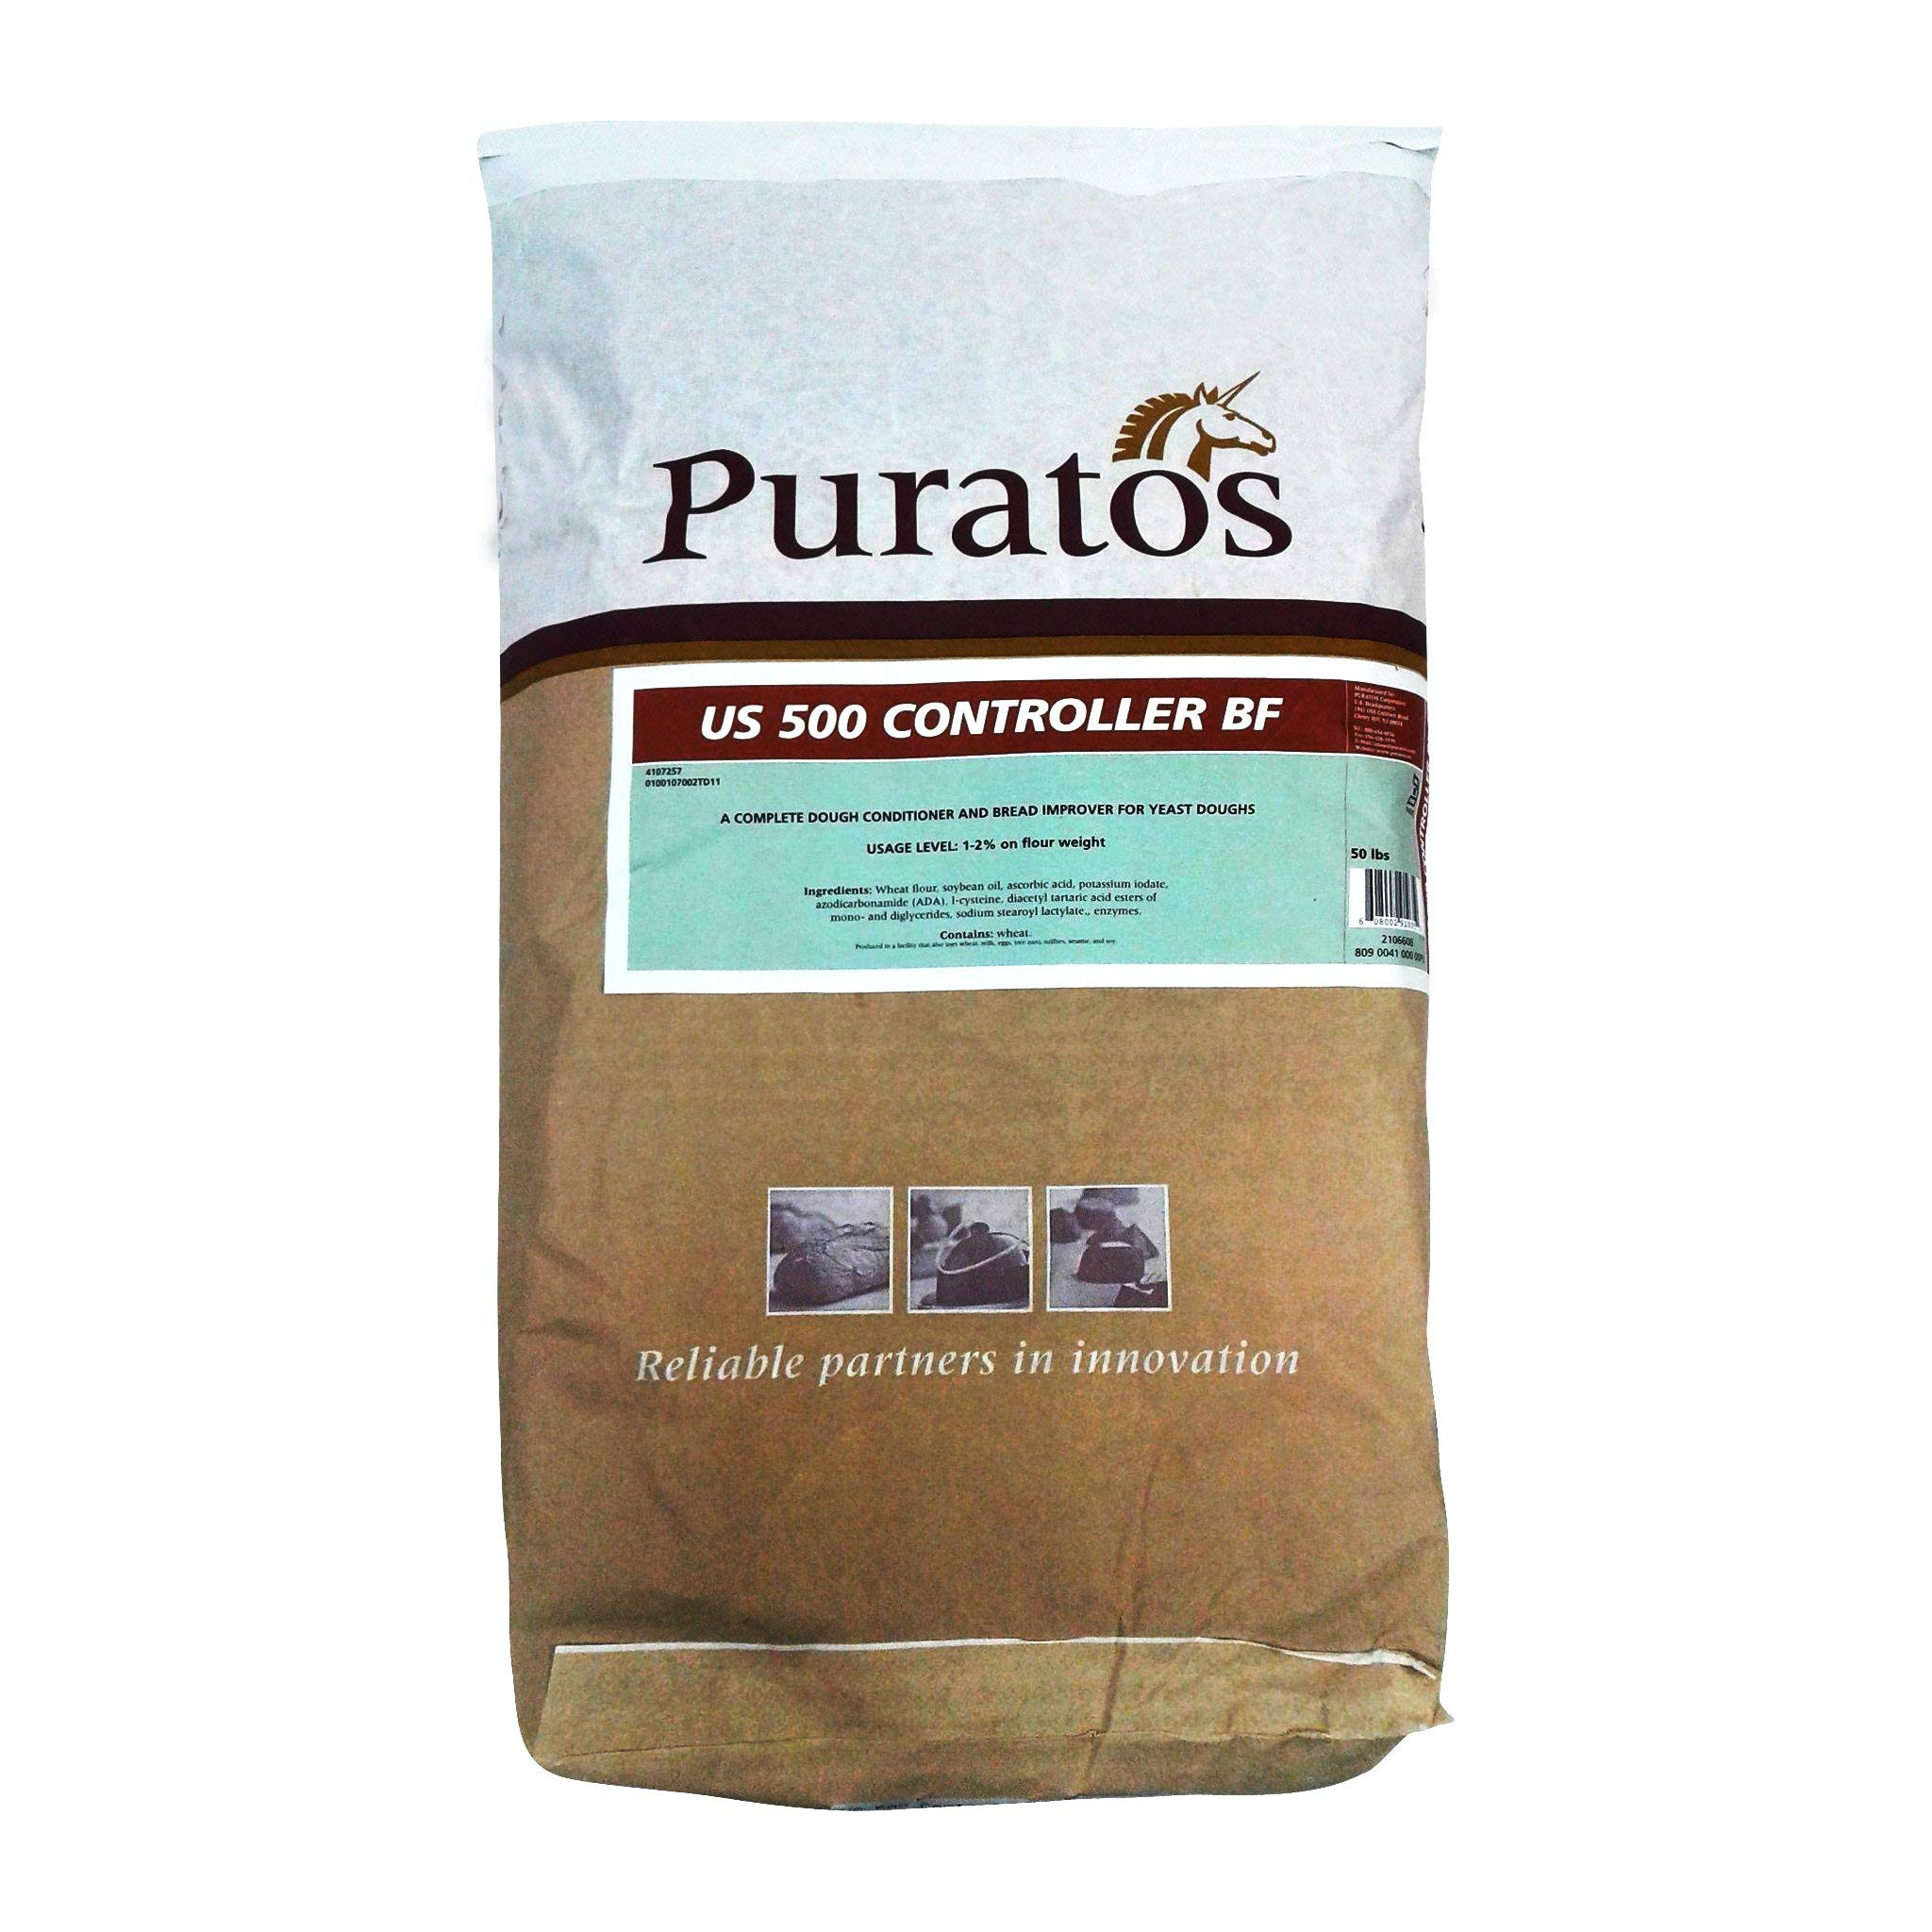 Puratos US 500 Dough Conditioner & Improver - 50 LB Bag by Generic (Image #1)